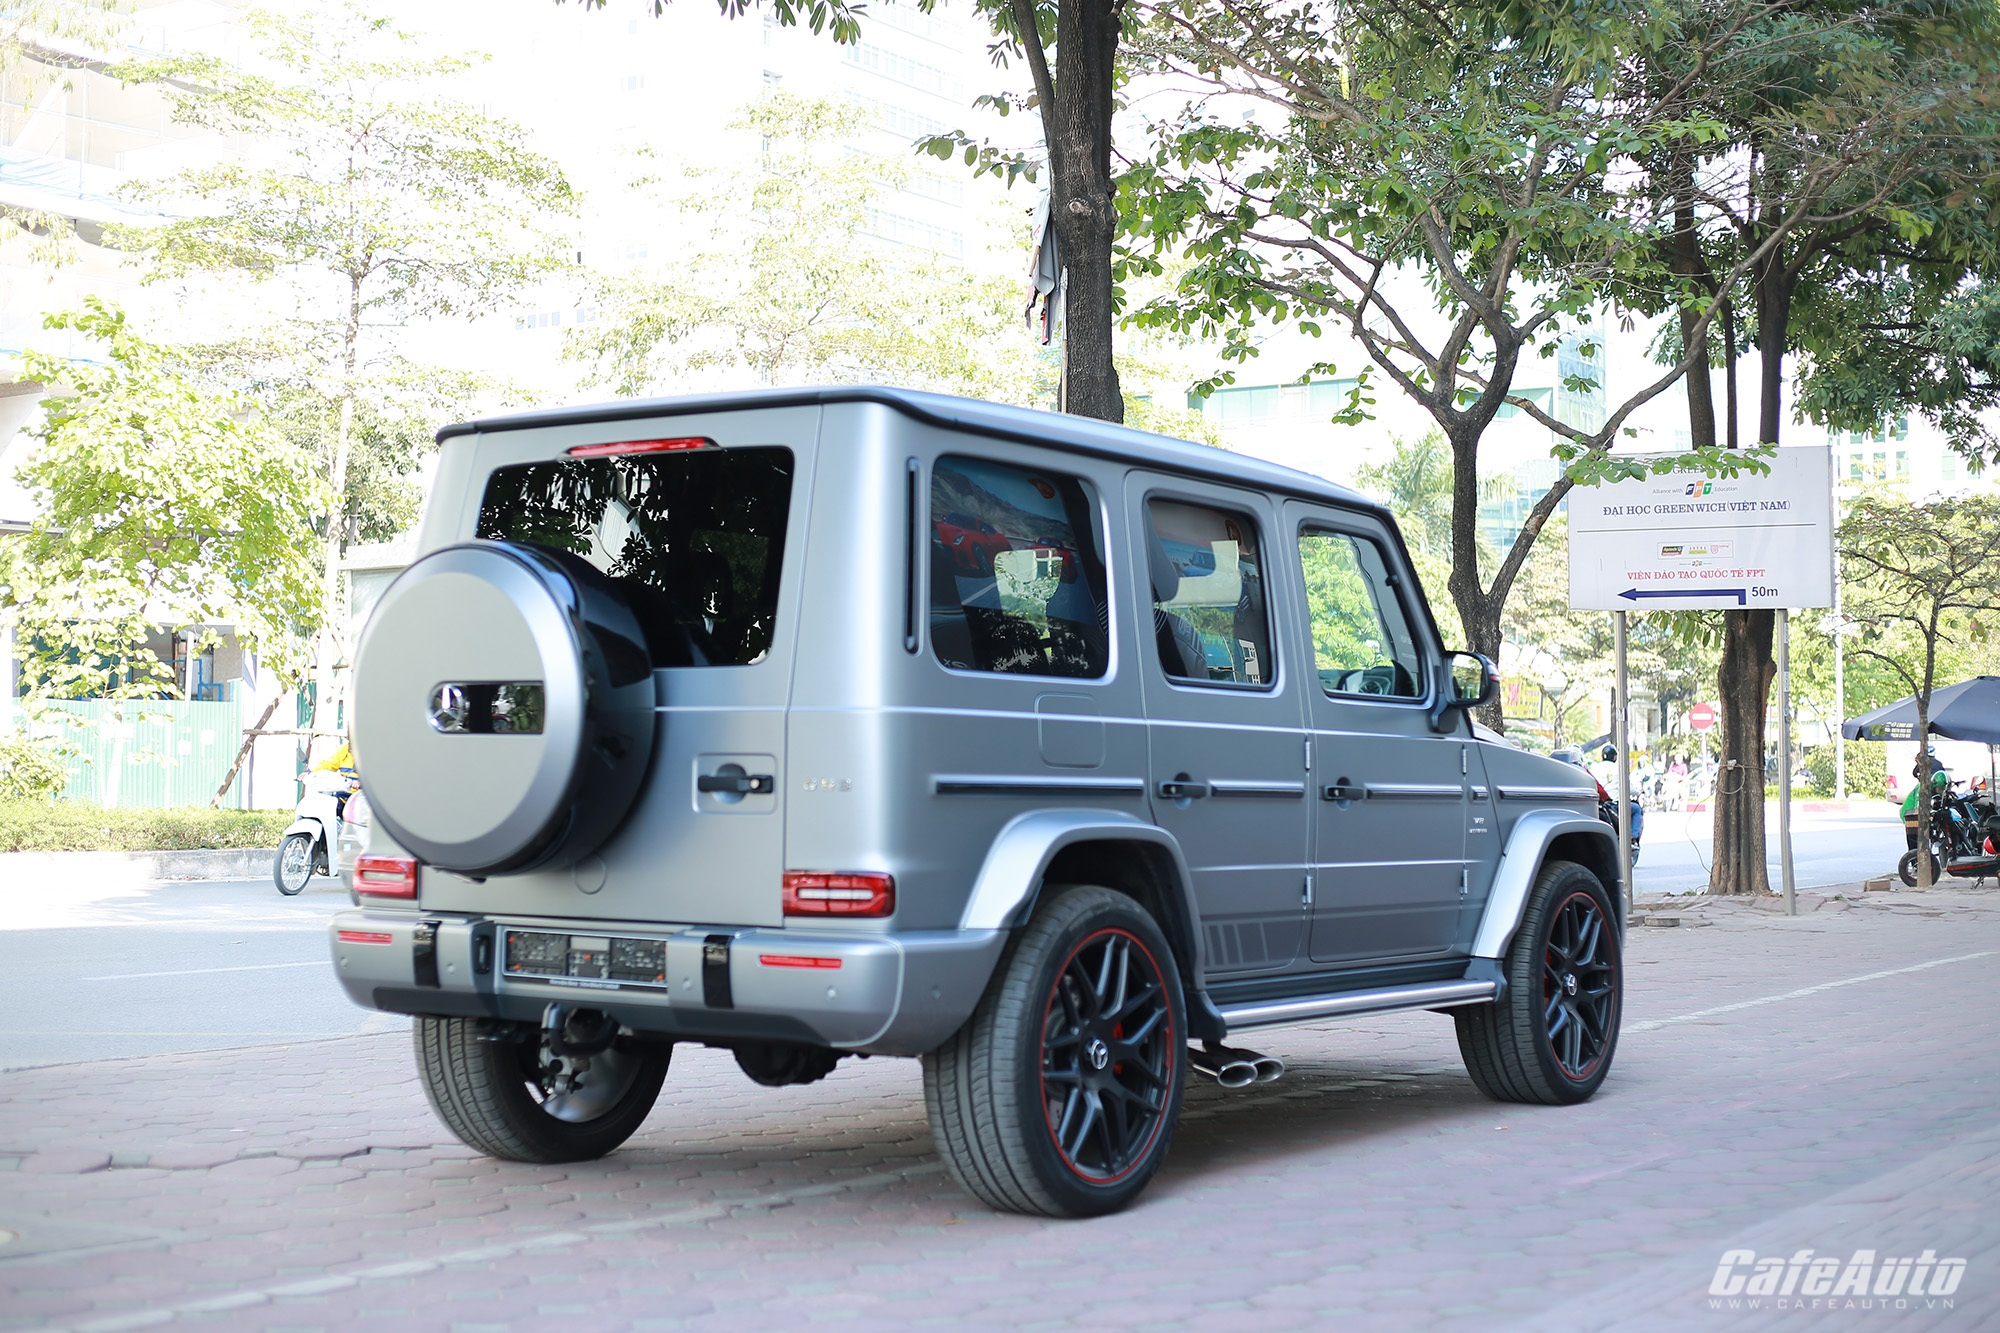 G63edition1-cafeautovn-13